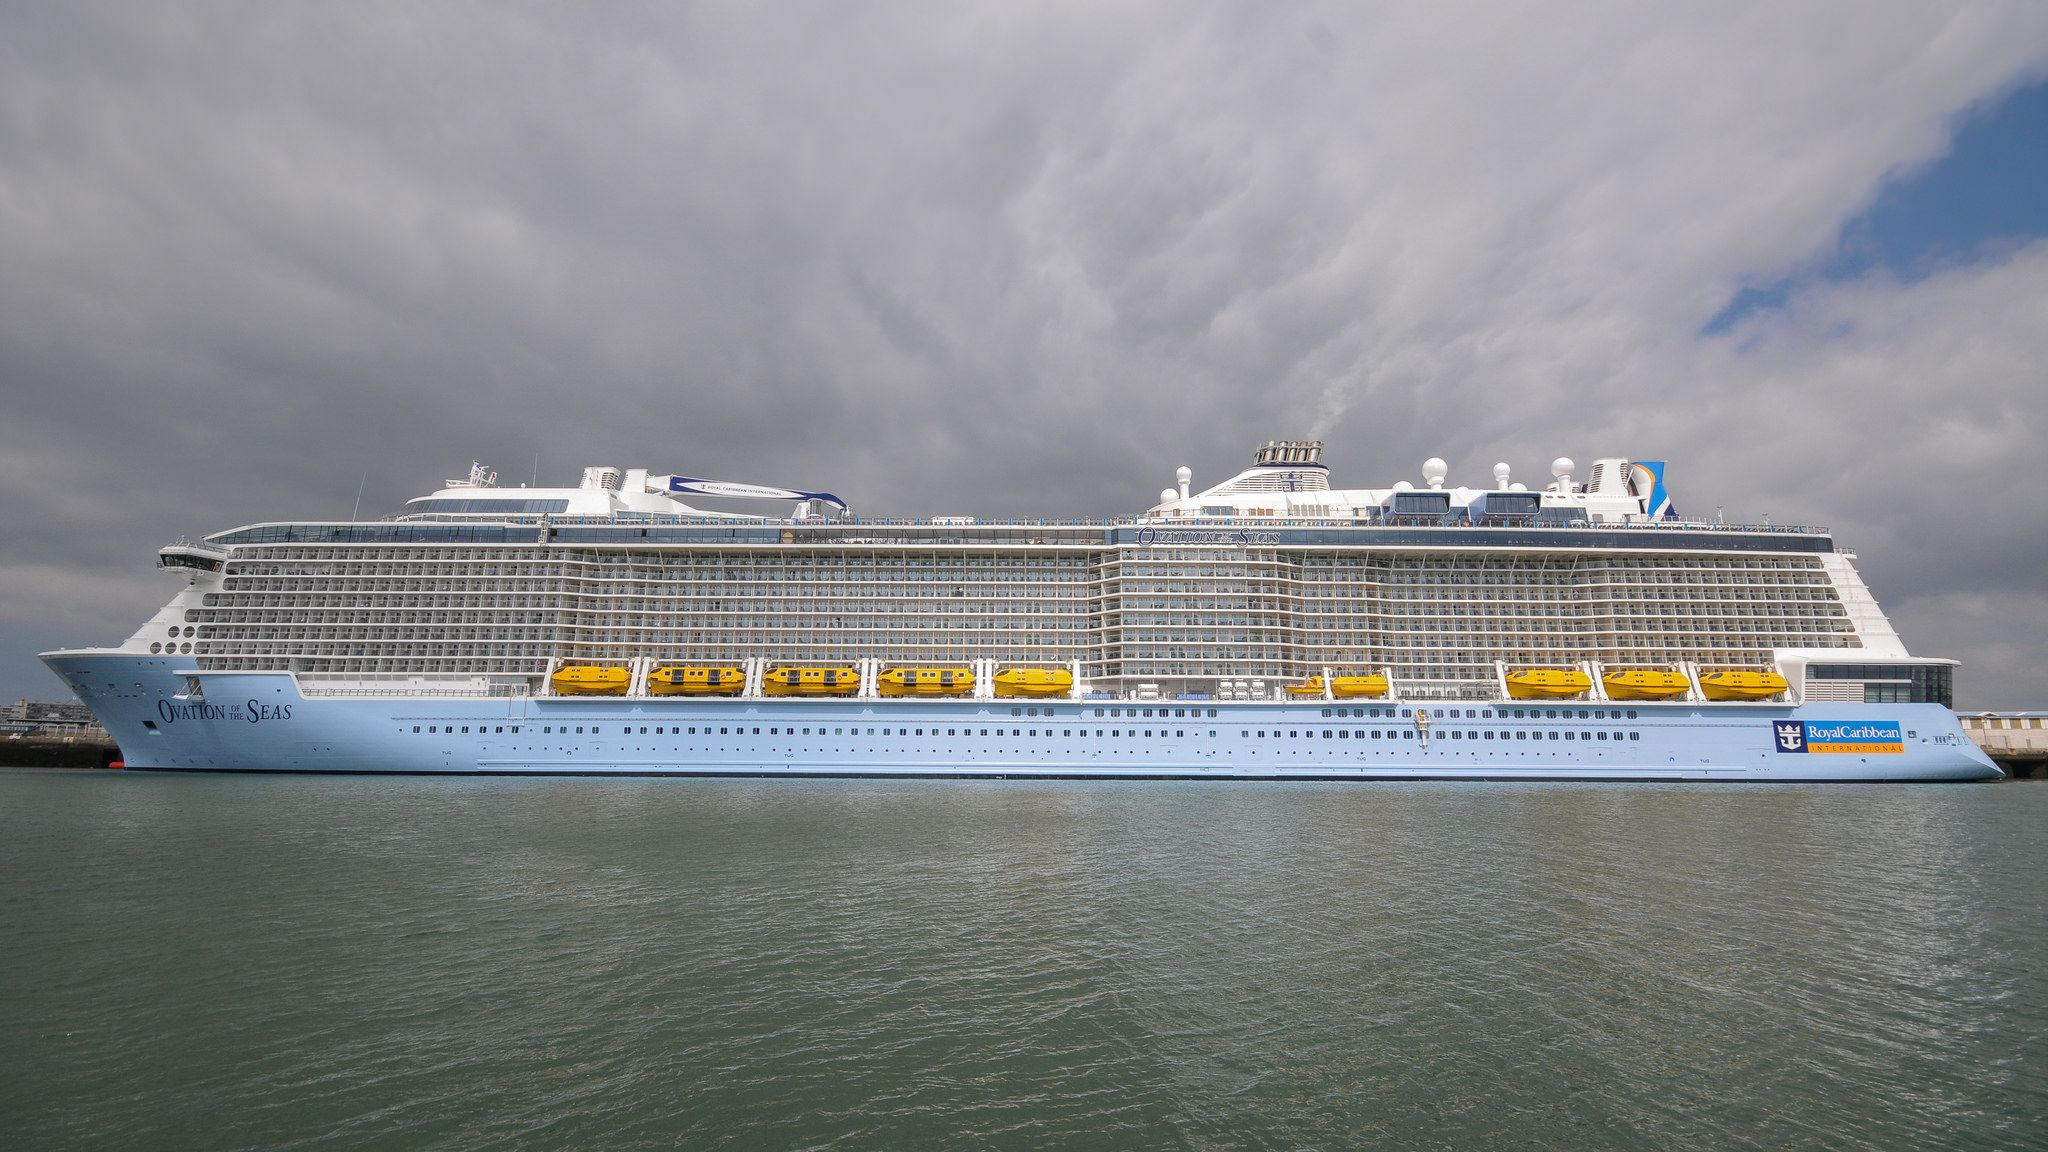 https://flic.kr/p/H3knrW | OVATION OF THE SEAS | Le Havre, France 19/04/2016 Maiden Call, Escale Inaugurale